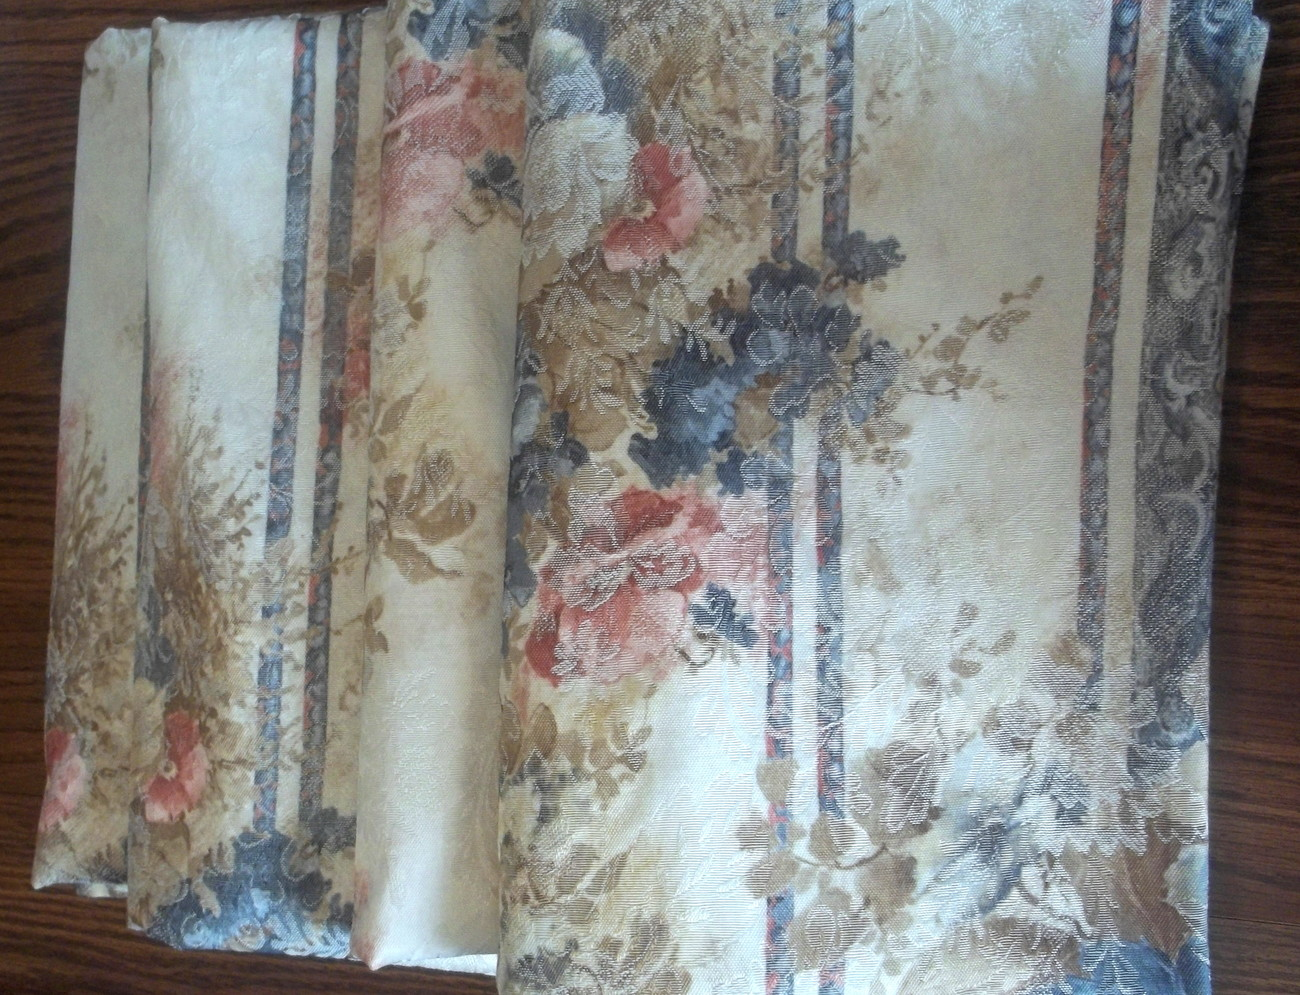 Floral_drapes_jc_penney_11935_cream_blue_pink_lot_of_4_24_x_62_011